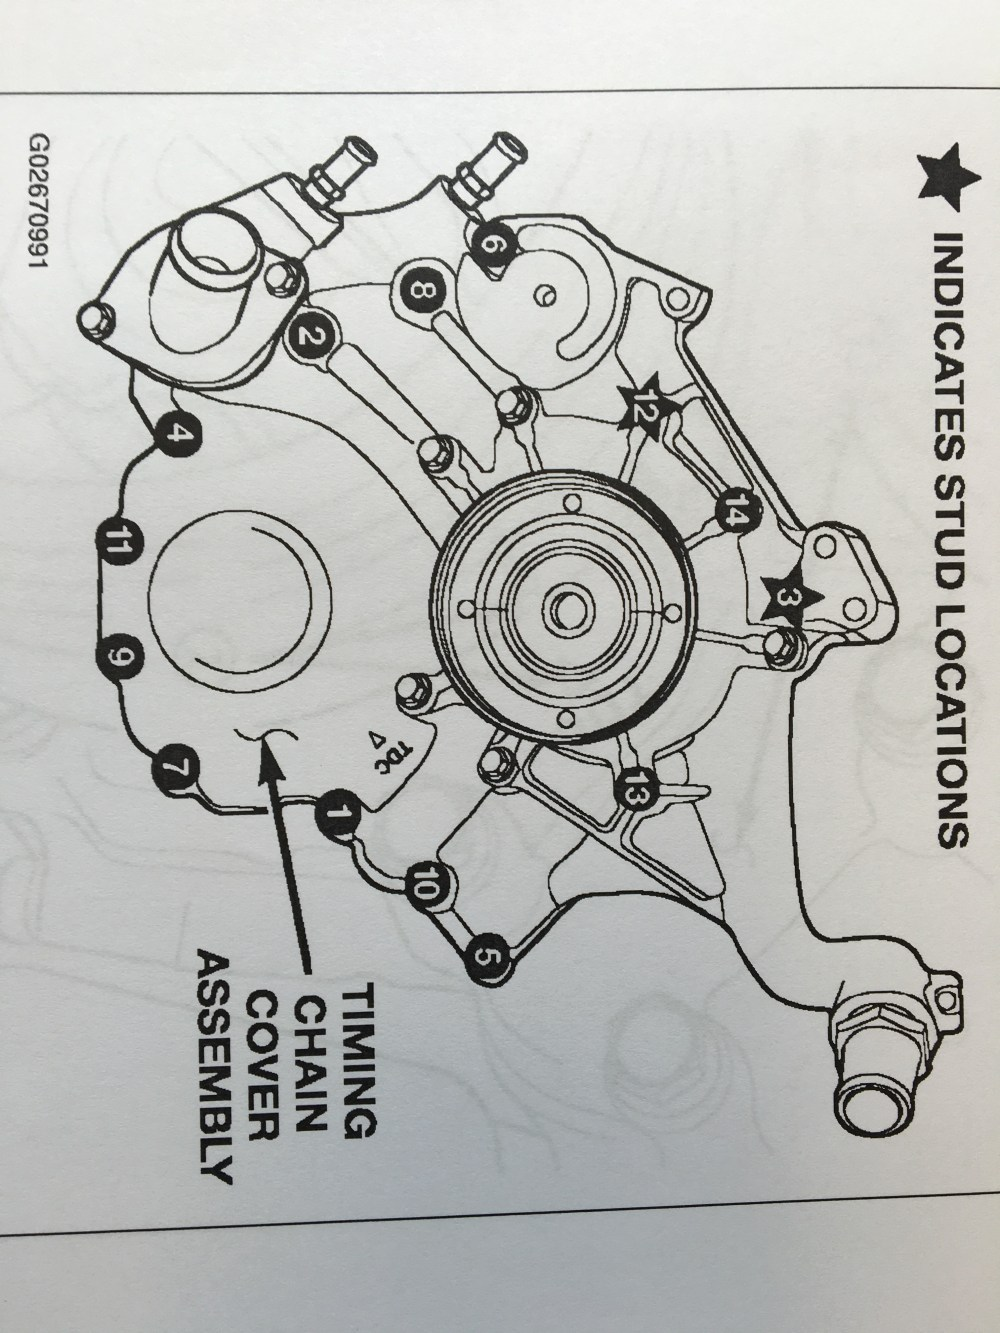 medium resolution of after removing all the timing cover bolts and studs remove any remaining gasket and or adhesive from the cover and engine block face being very careful not